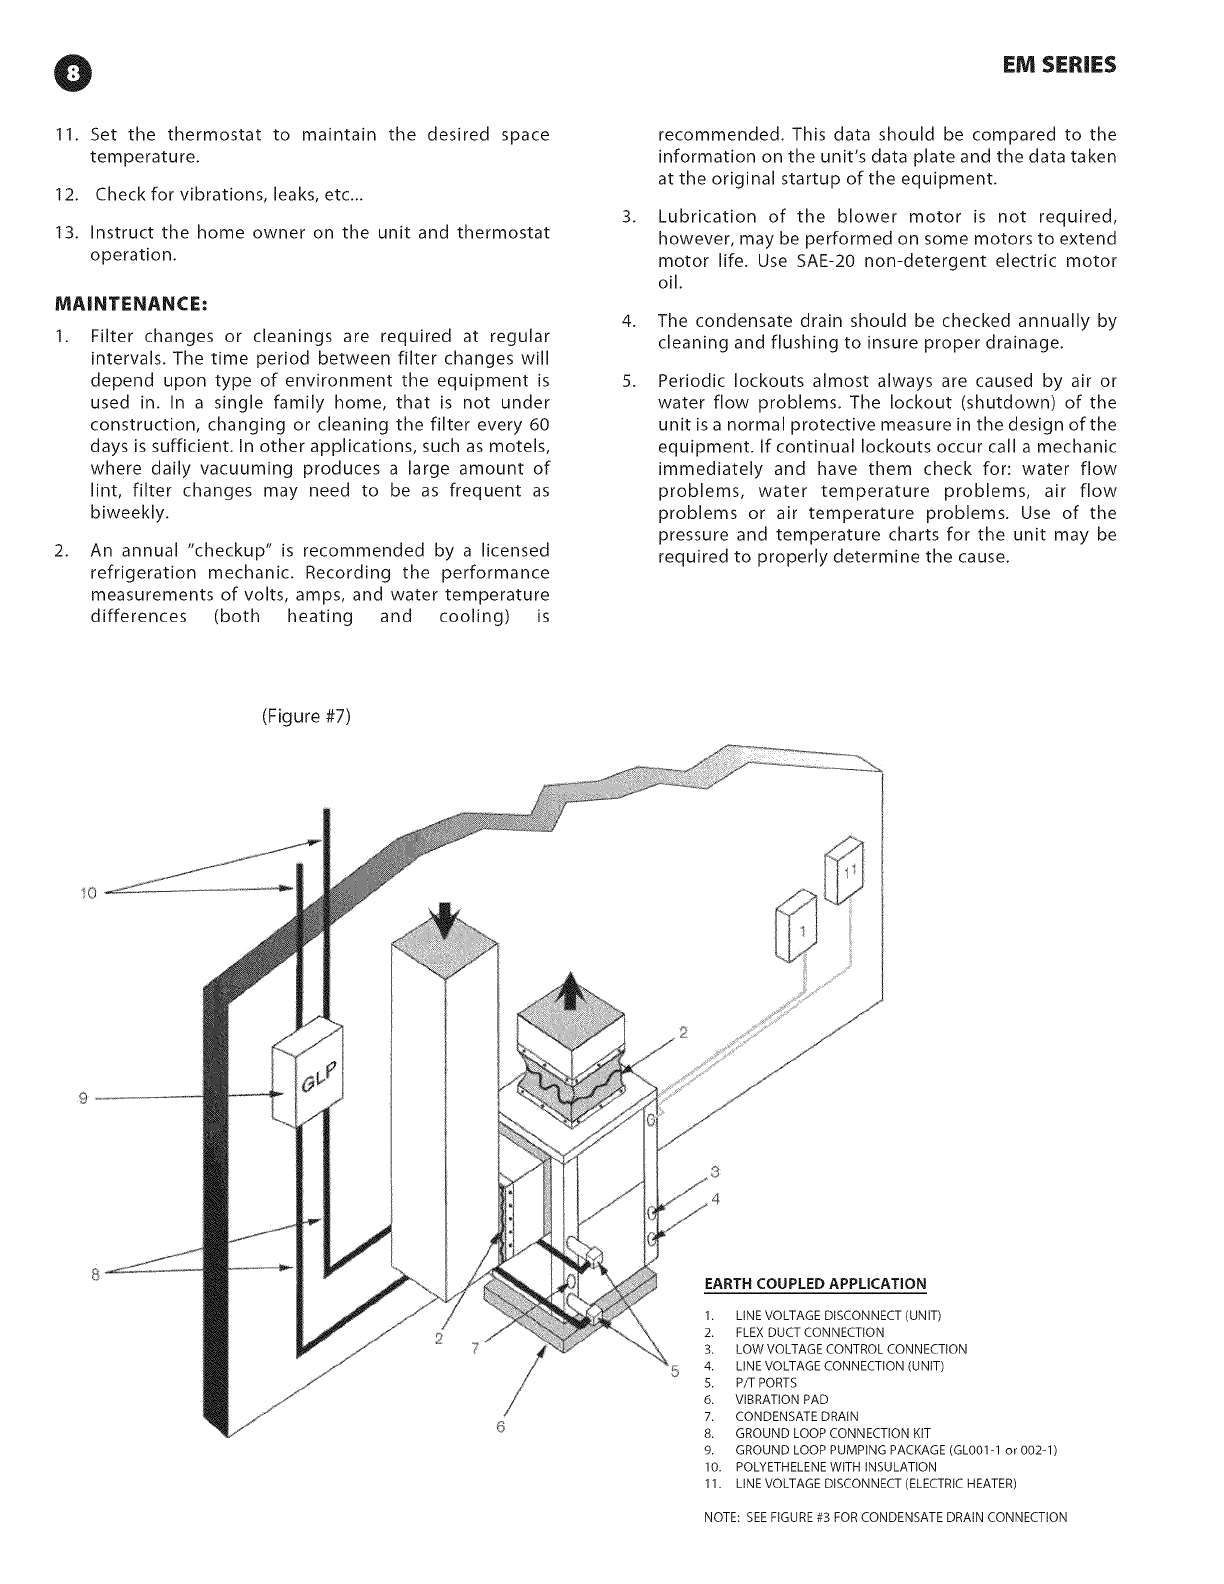 Disconnect Electrical Motor Connection Diagram Florida Heatpump Package Unitsboth Units Combined Manual L0812357 Eivl Series